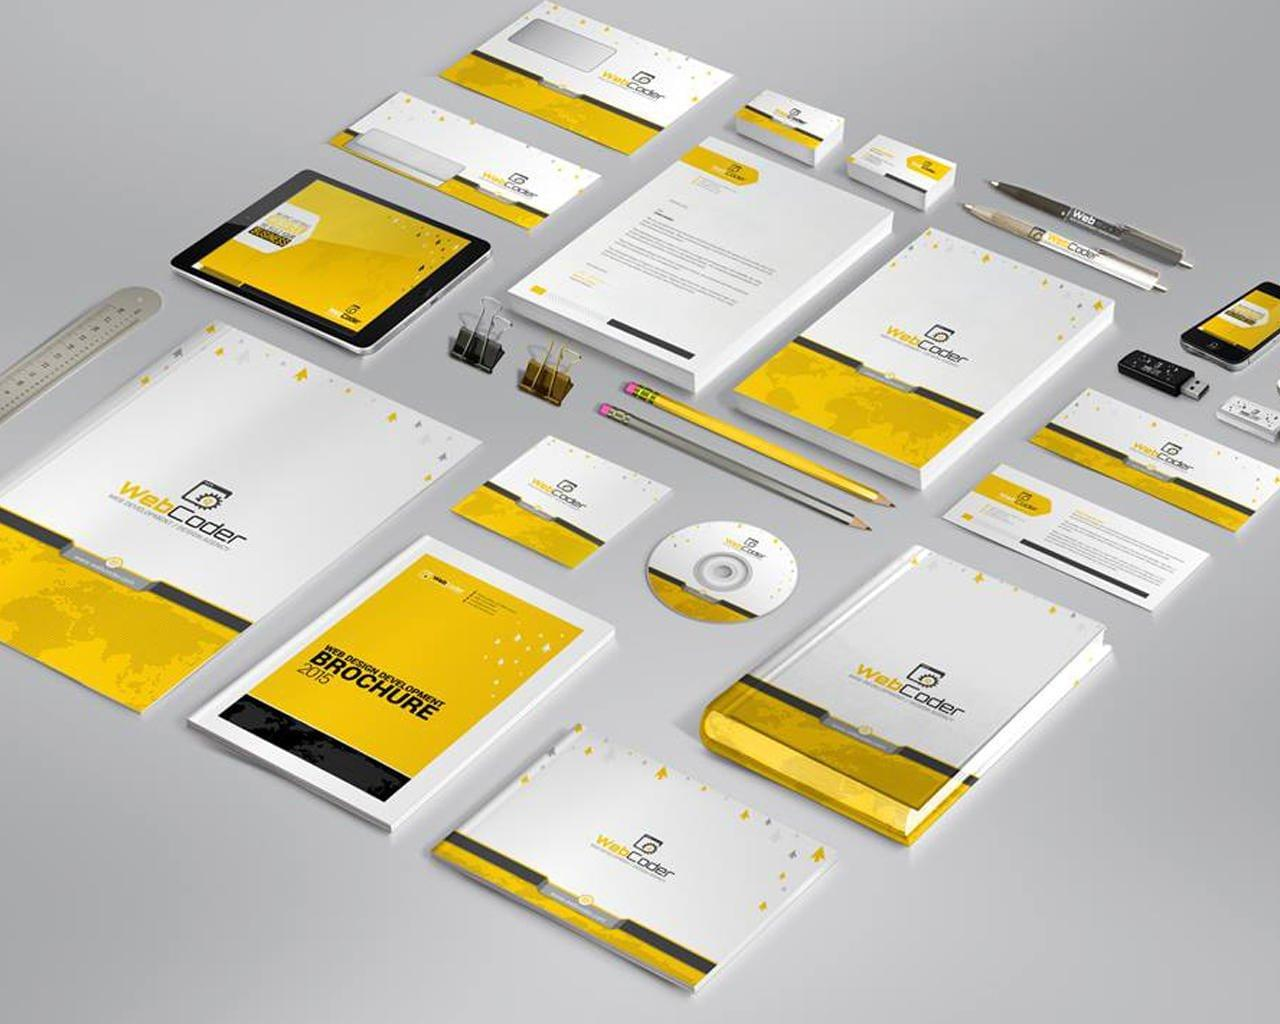 High Quality & Professional Stationery Design by edgyBrain - 111647